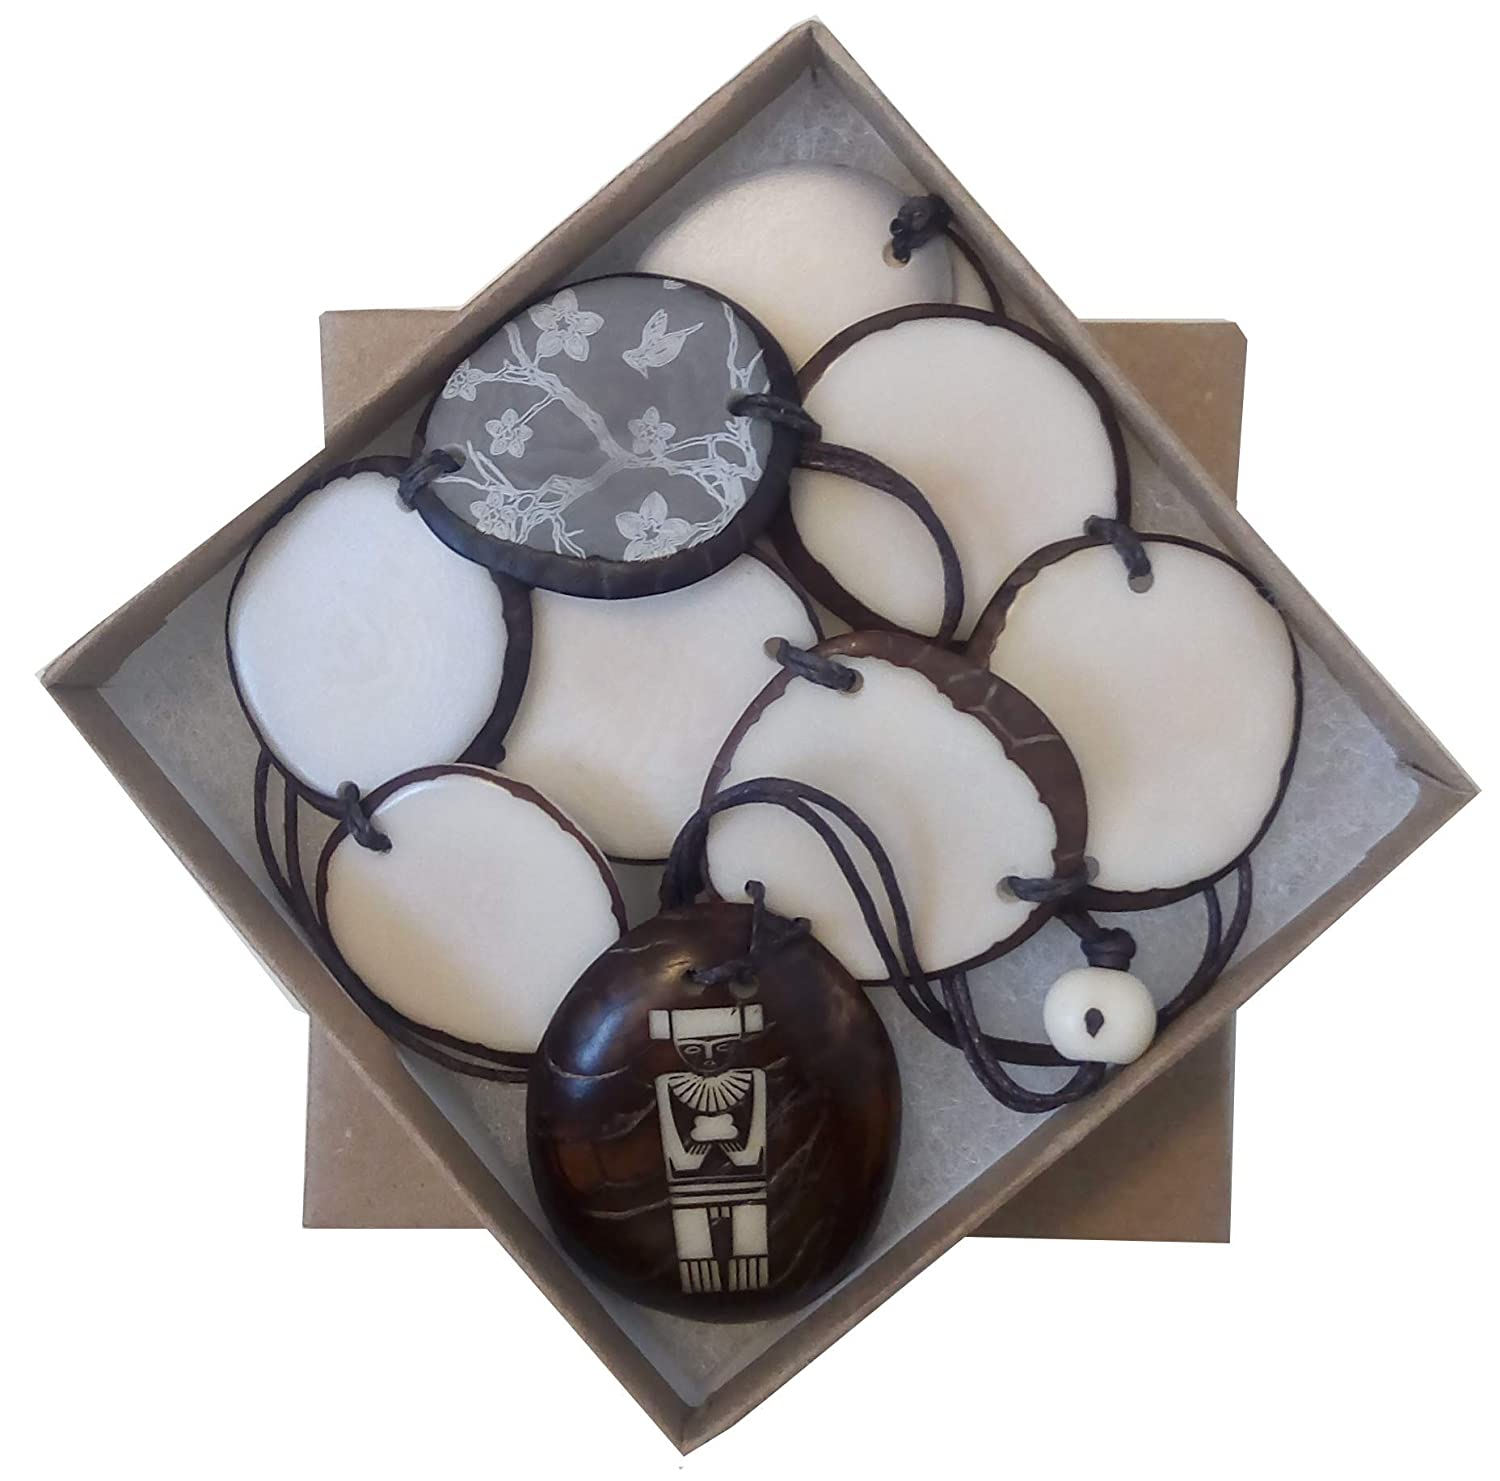 Amazon.com: DAGUA Indigenous Ivory Palm (tagua Seed) Necklace Handmade in Colombia undyed Vegan Cruelty Free (Back to Your Roots): Jewelry